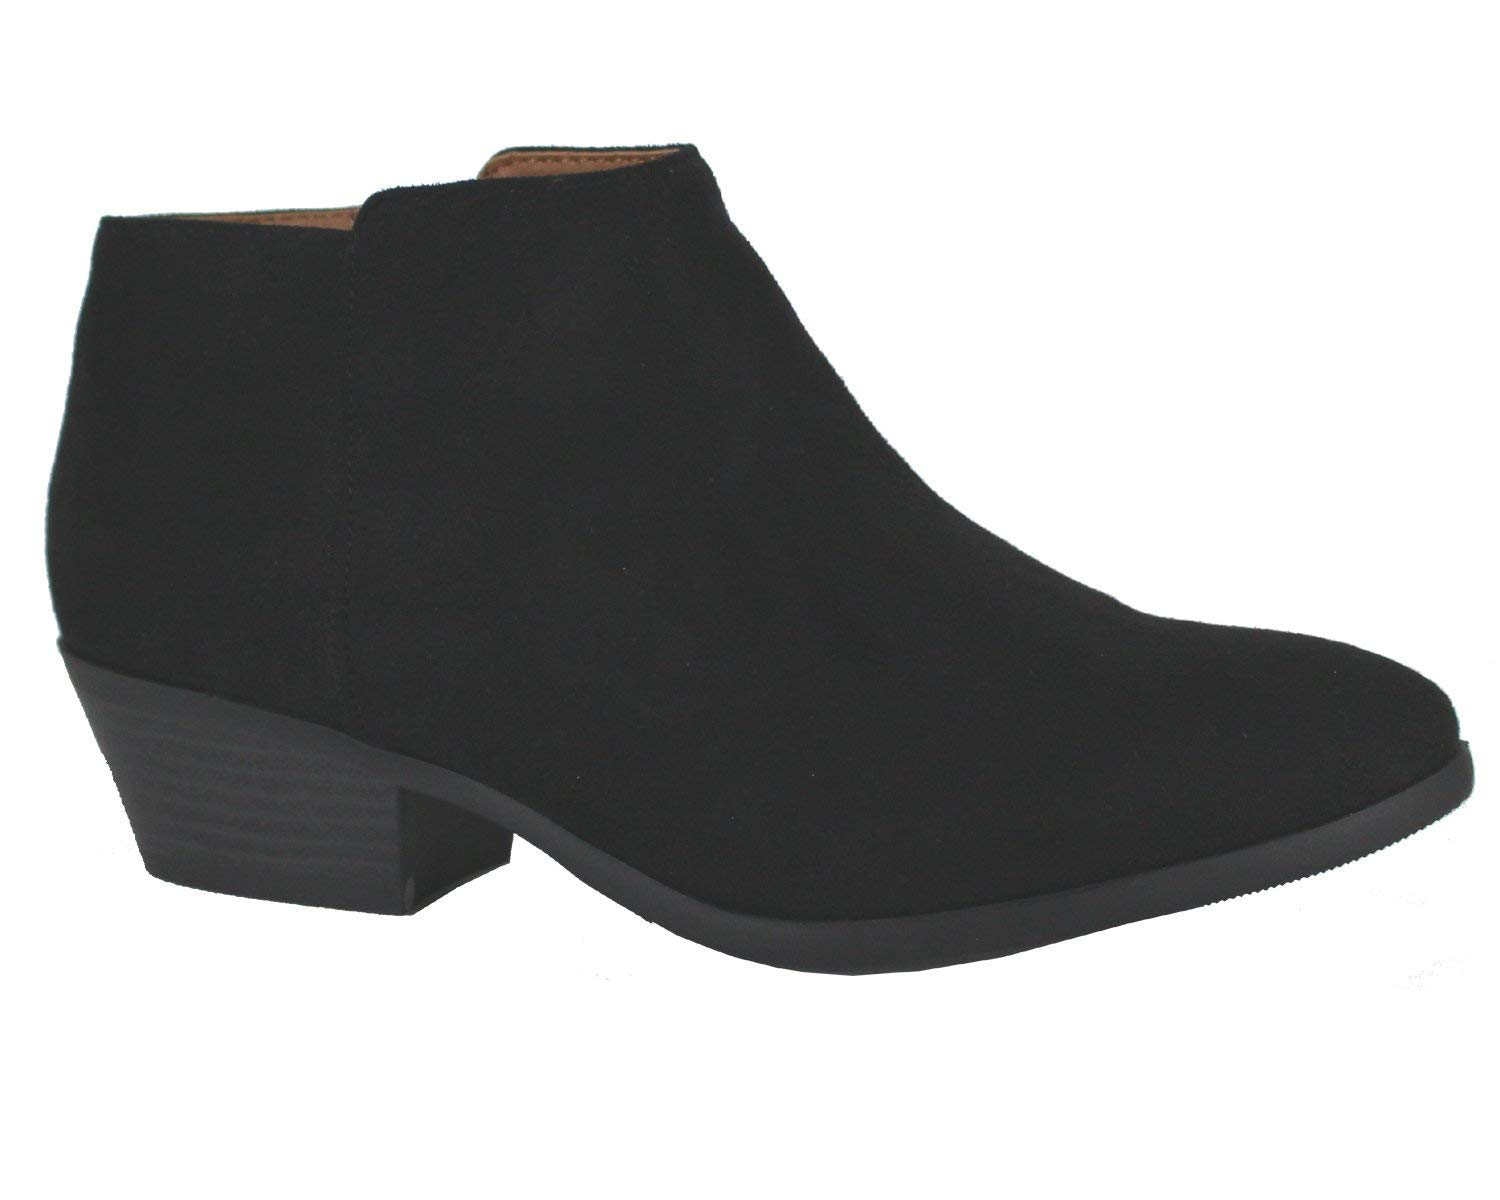 Soda Western Ankle Boot- Cowgirl Low Heel Closed Toe Casual Bootie ISU Black 8